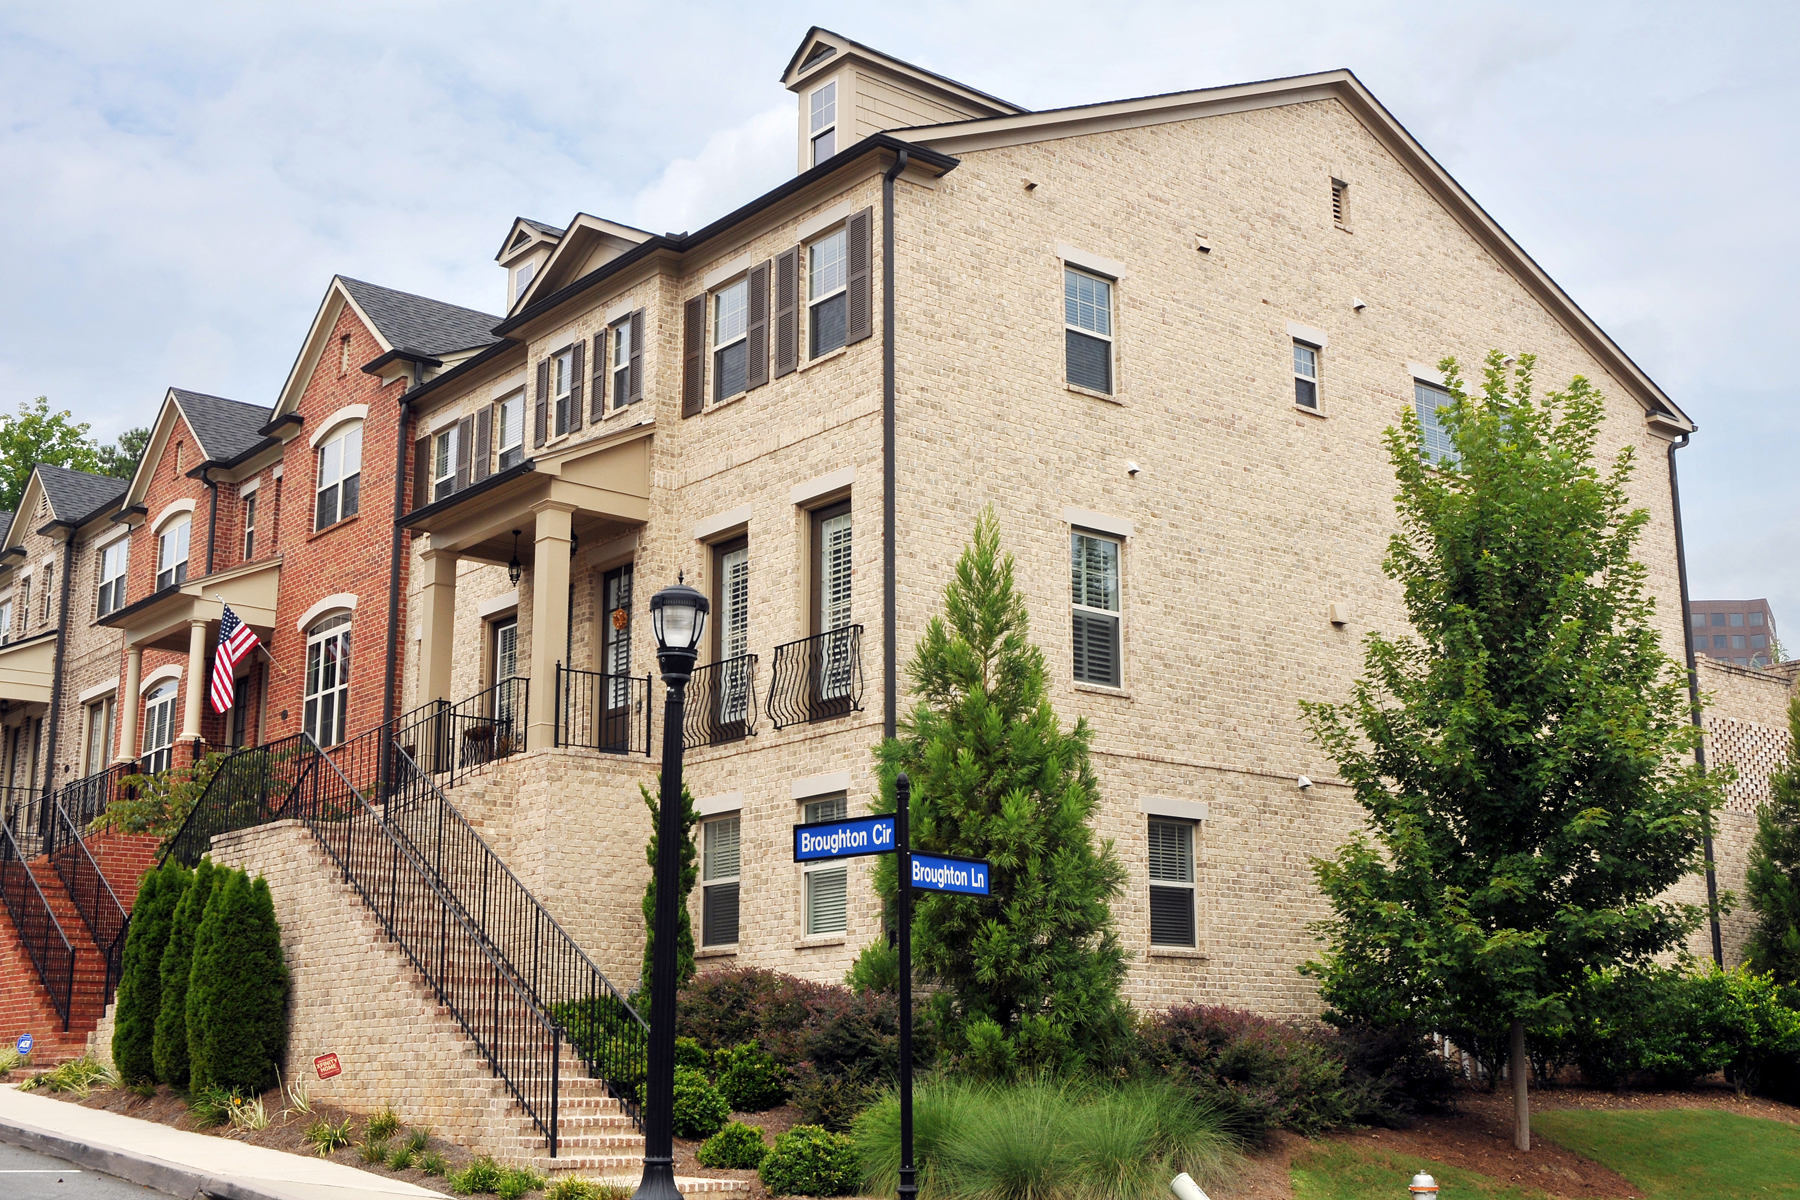 Townhouse for Sale at The Battery On Paces View In Vinings 3732 Broughton Circle SE Vinings, Atlanta, Georgia 30339 United States